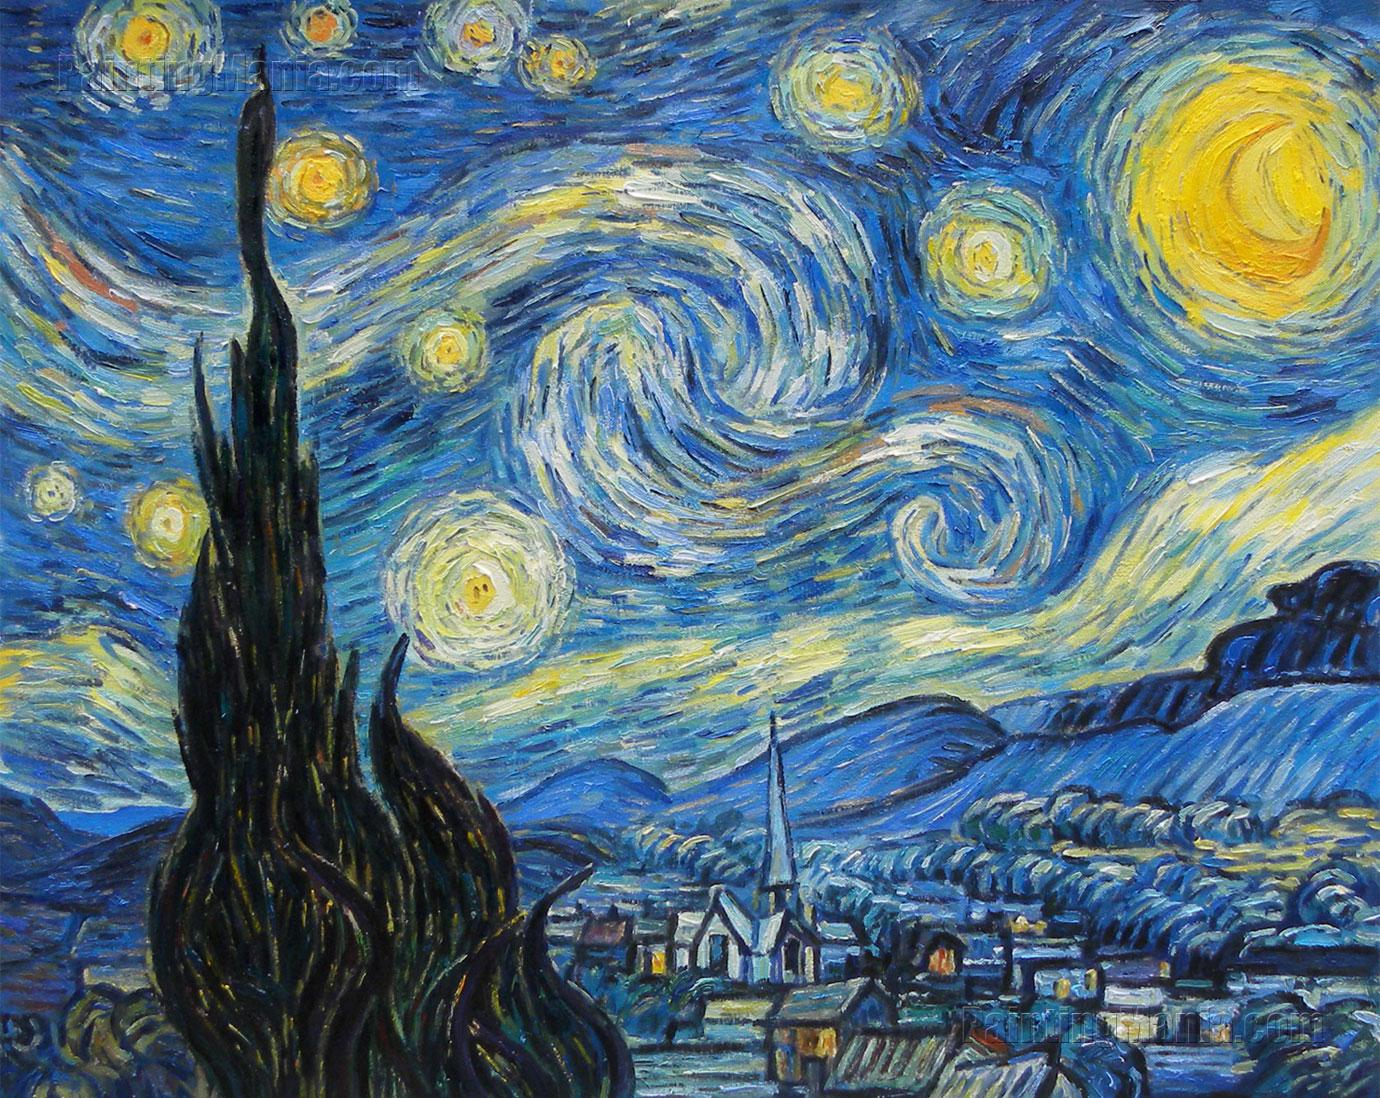 van gogh dark paintings - photo #25